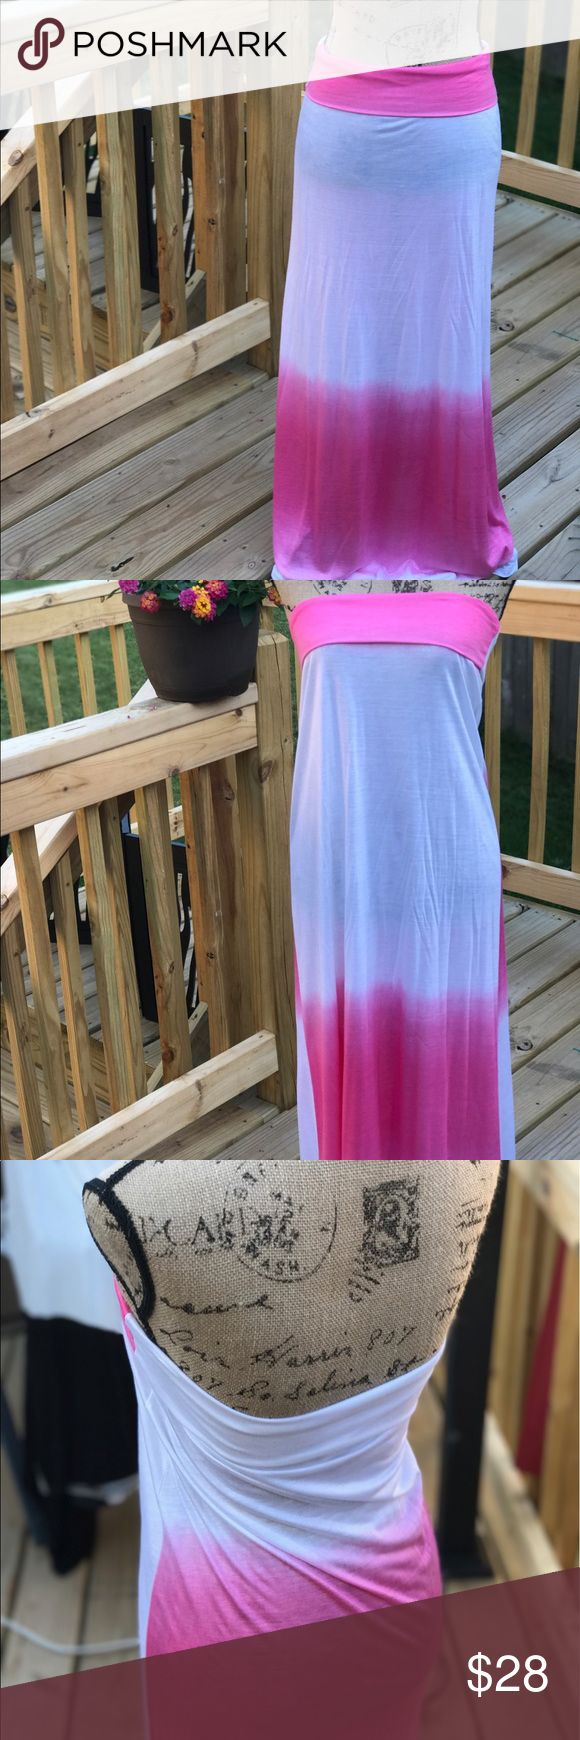 Maxi skirt / Beach cover up Pink and white Maxi skirt / beach cover up Skirts Maxi